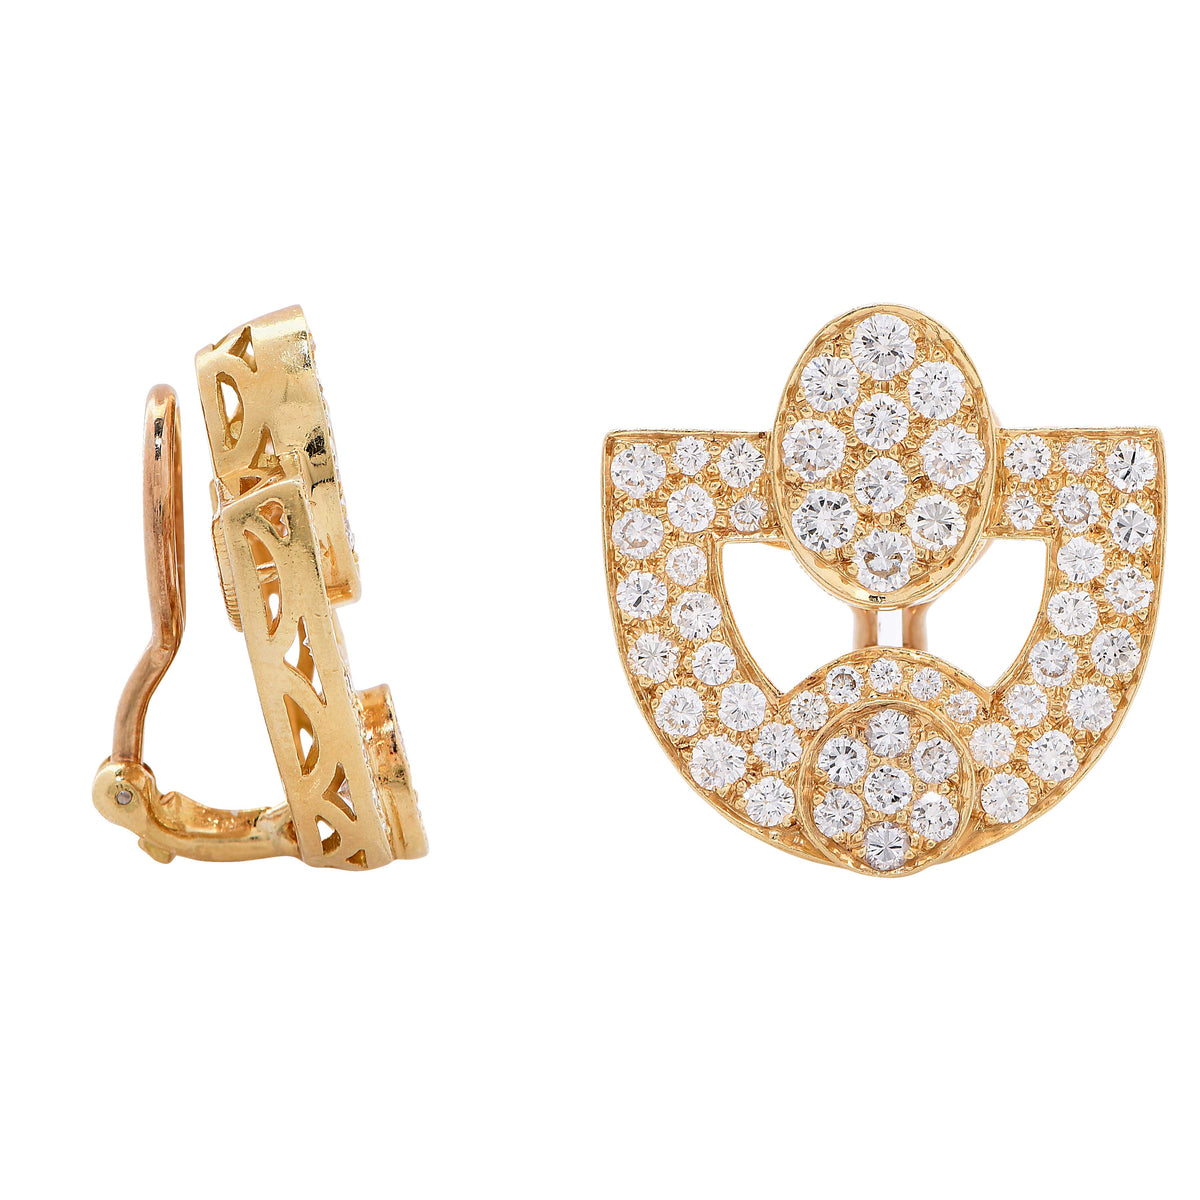 4 Carats Diamonds Yellow Gold Earrings